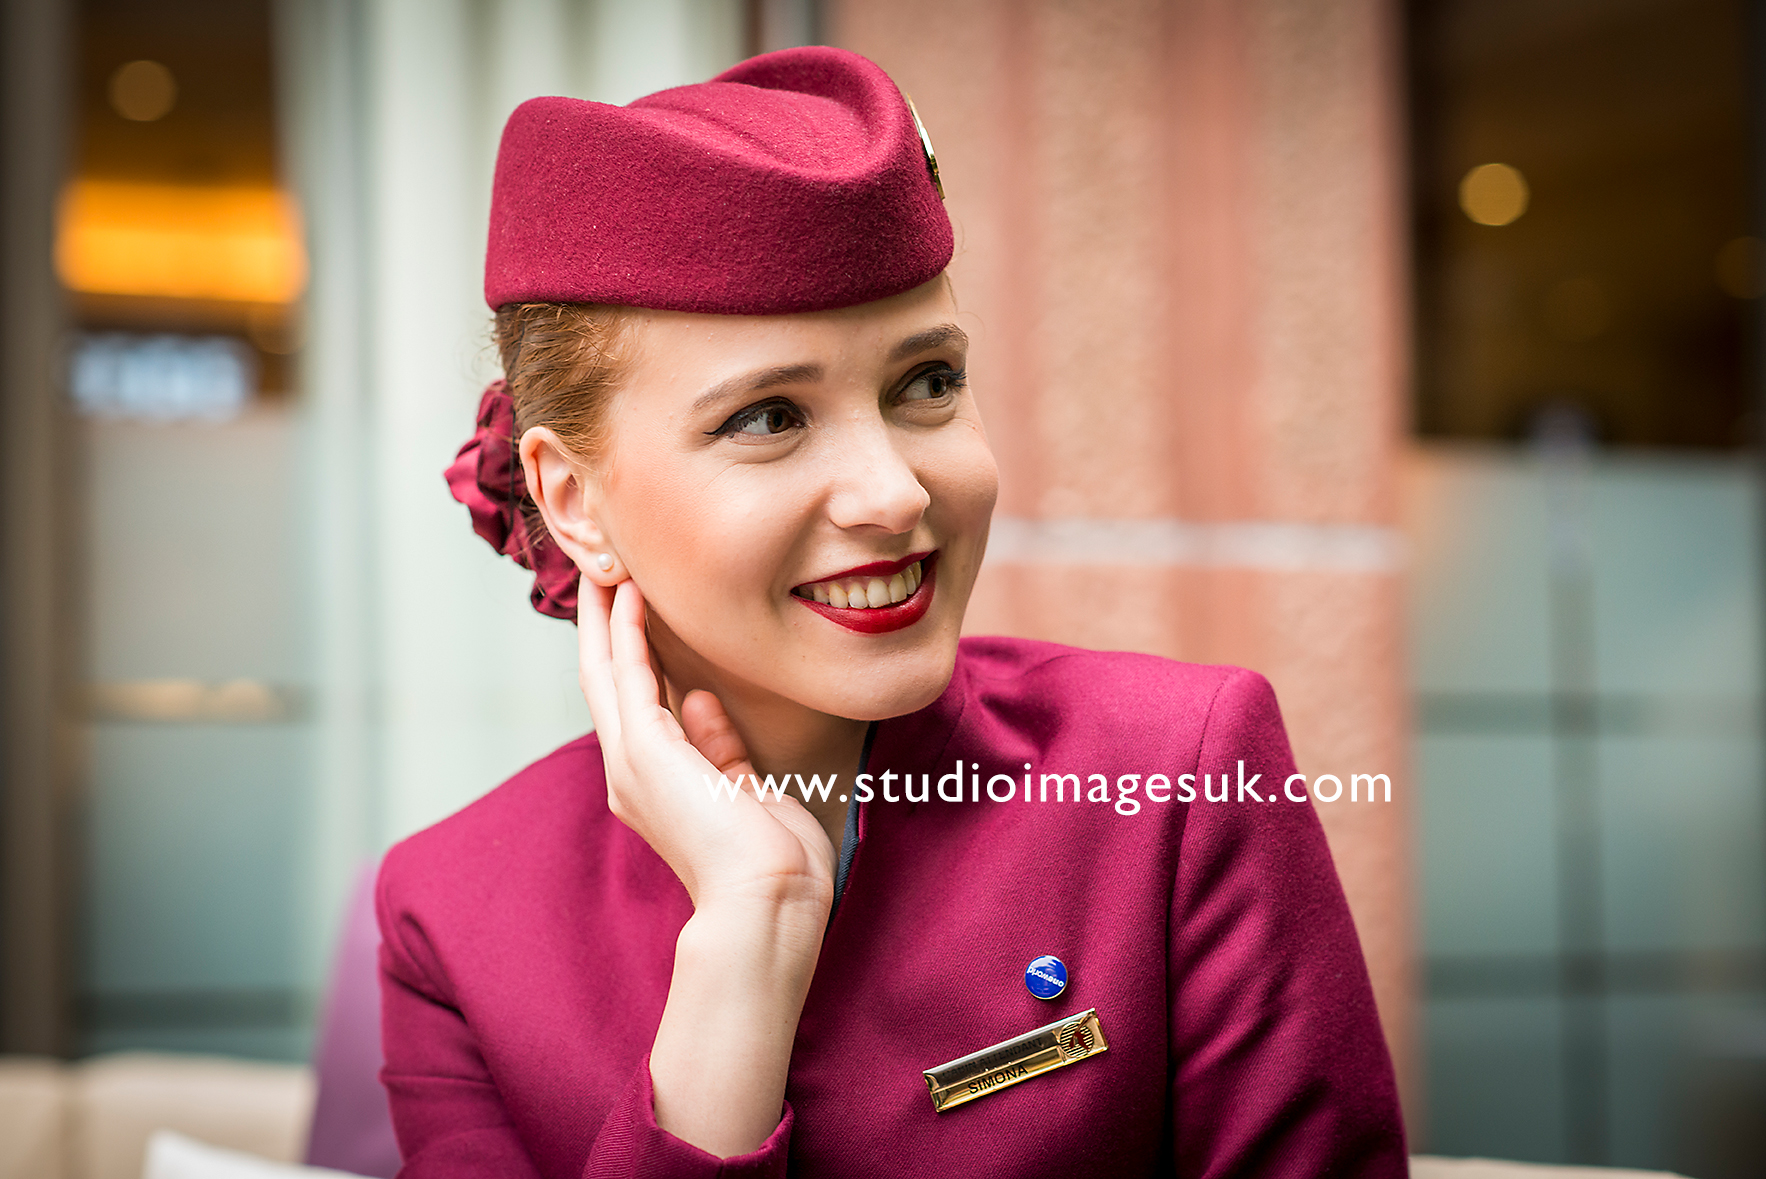 At Studio images UK, we help Emirates and Qatar applicants with professional CV preparation and application photo editing.